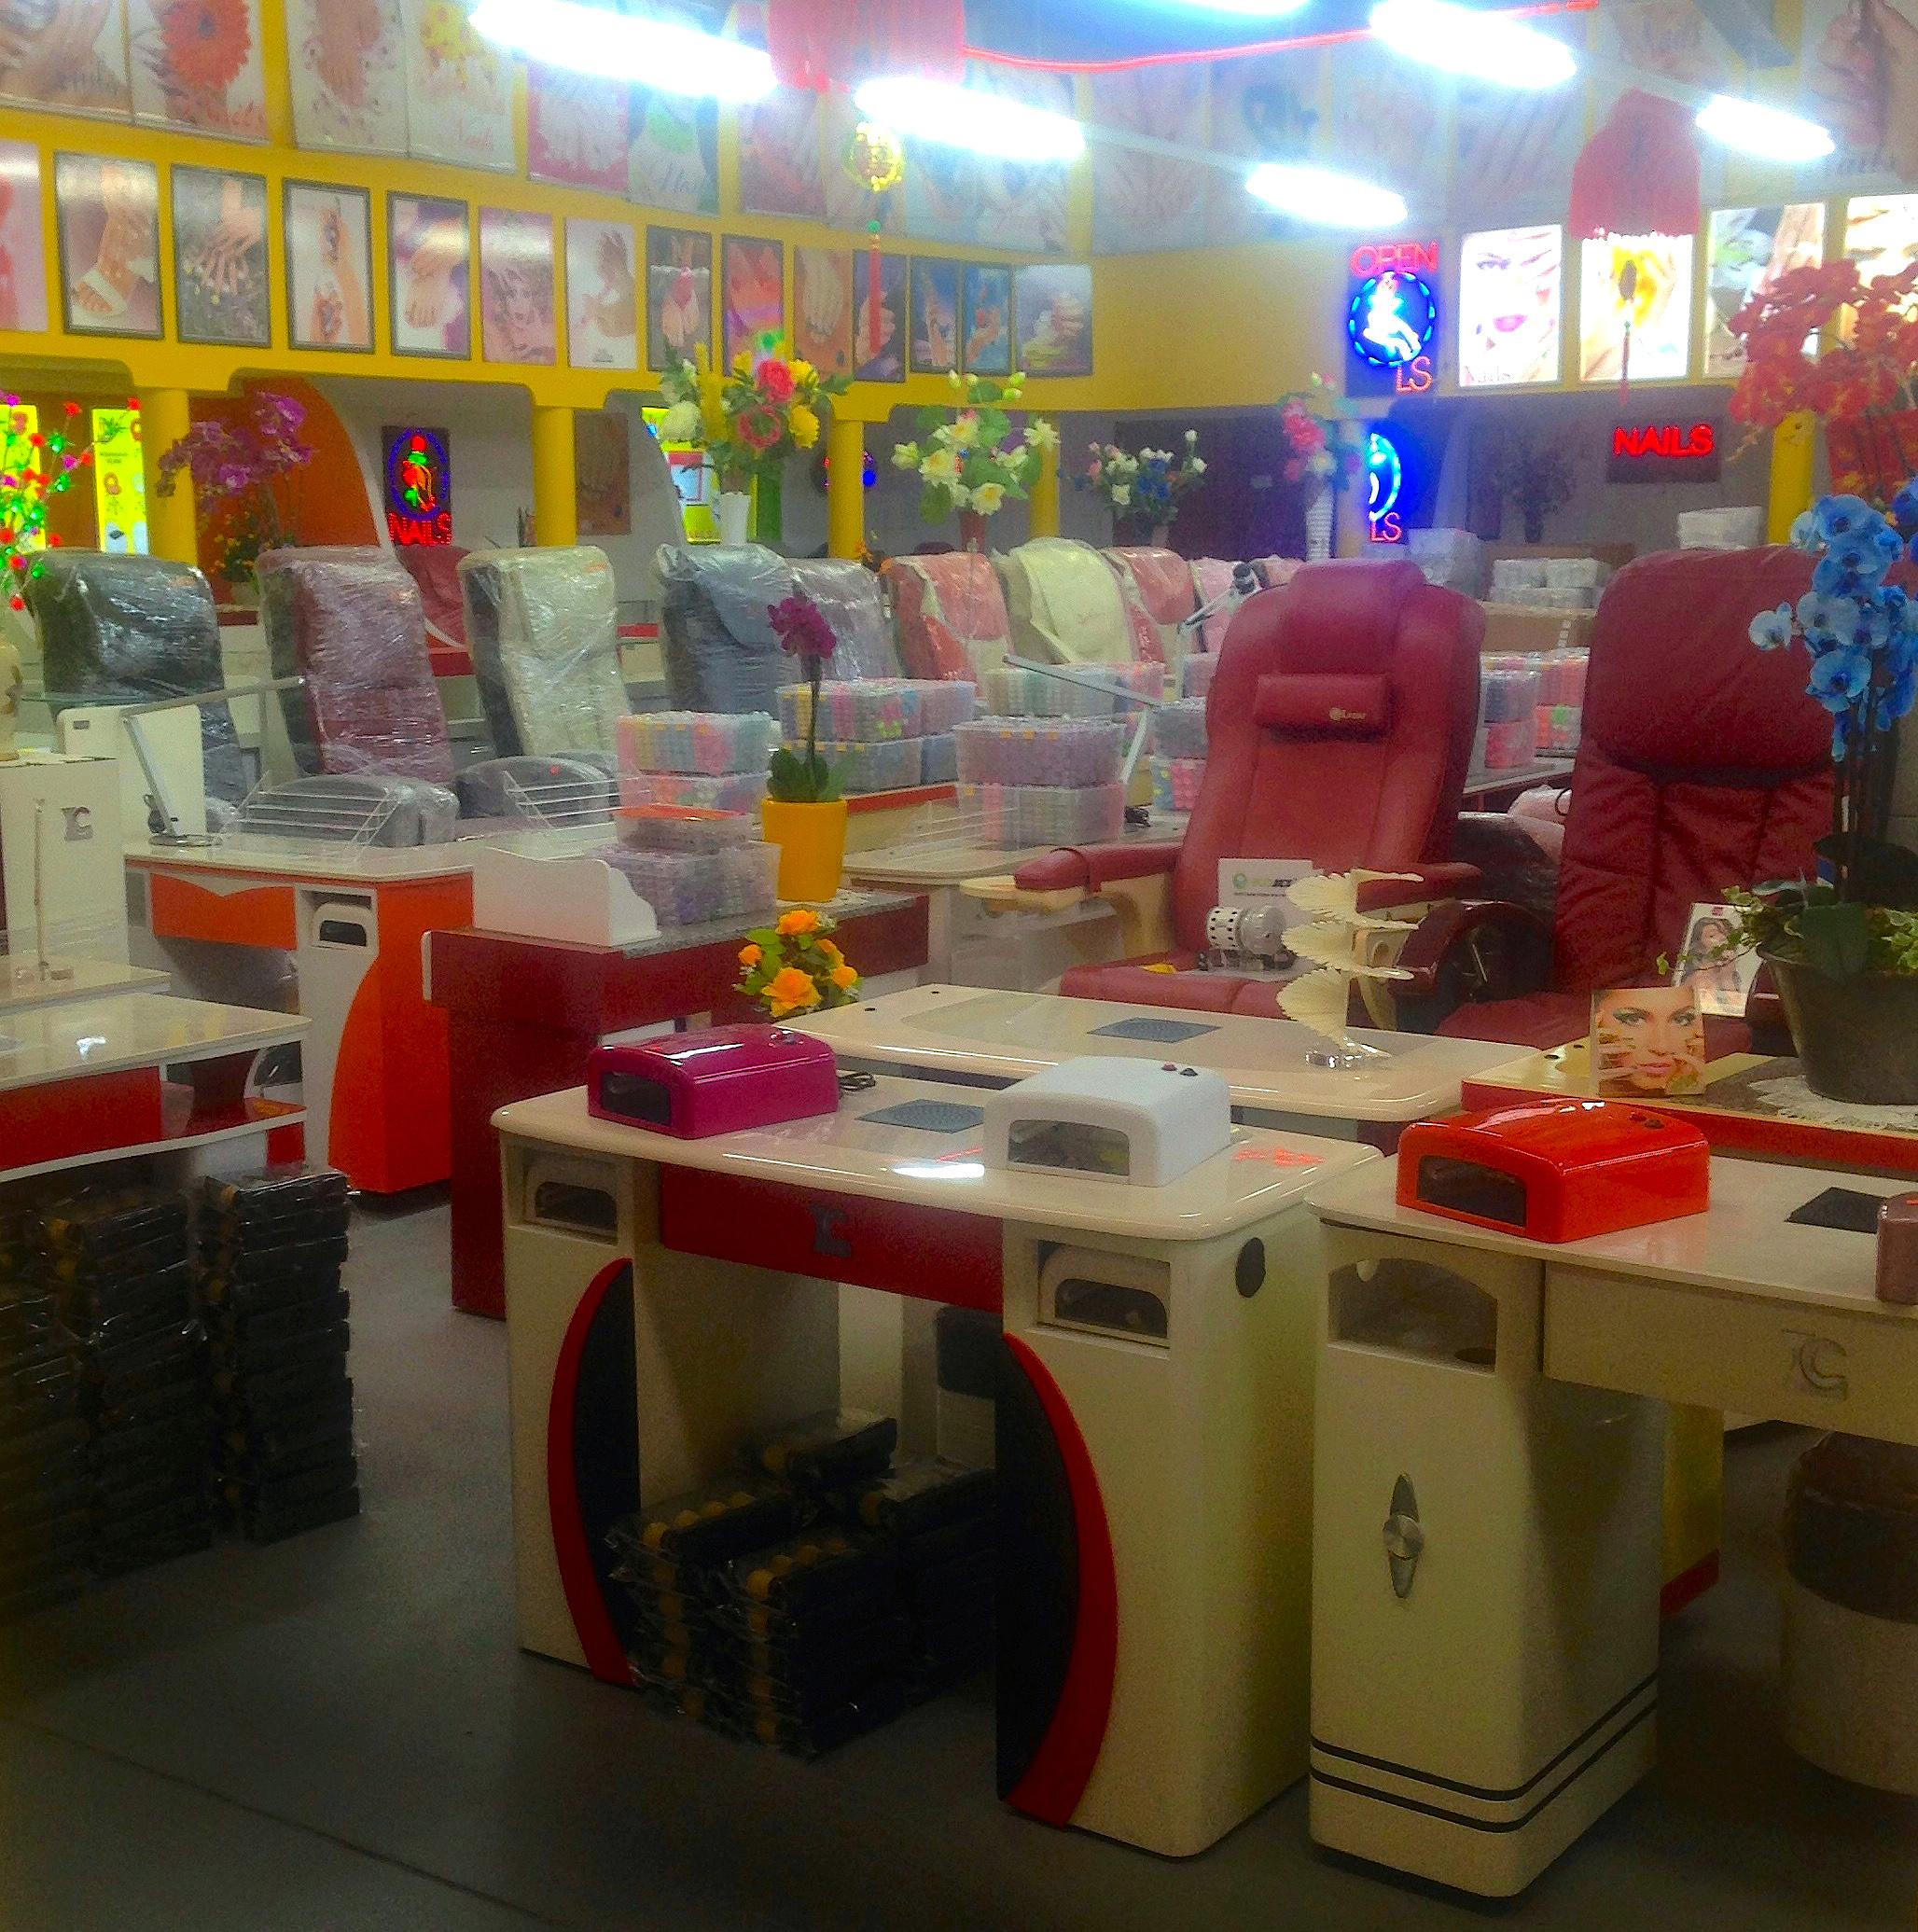 Supplies for a nail salon, Dong Xuan Center